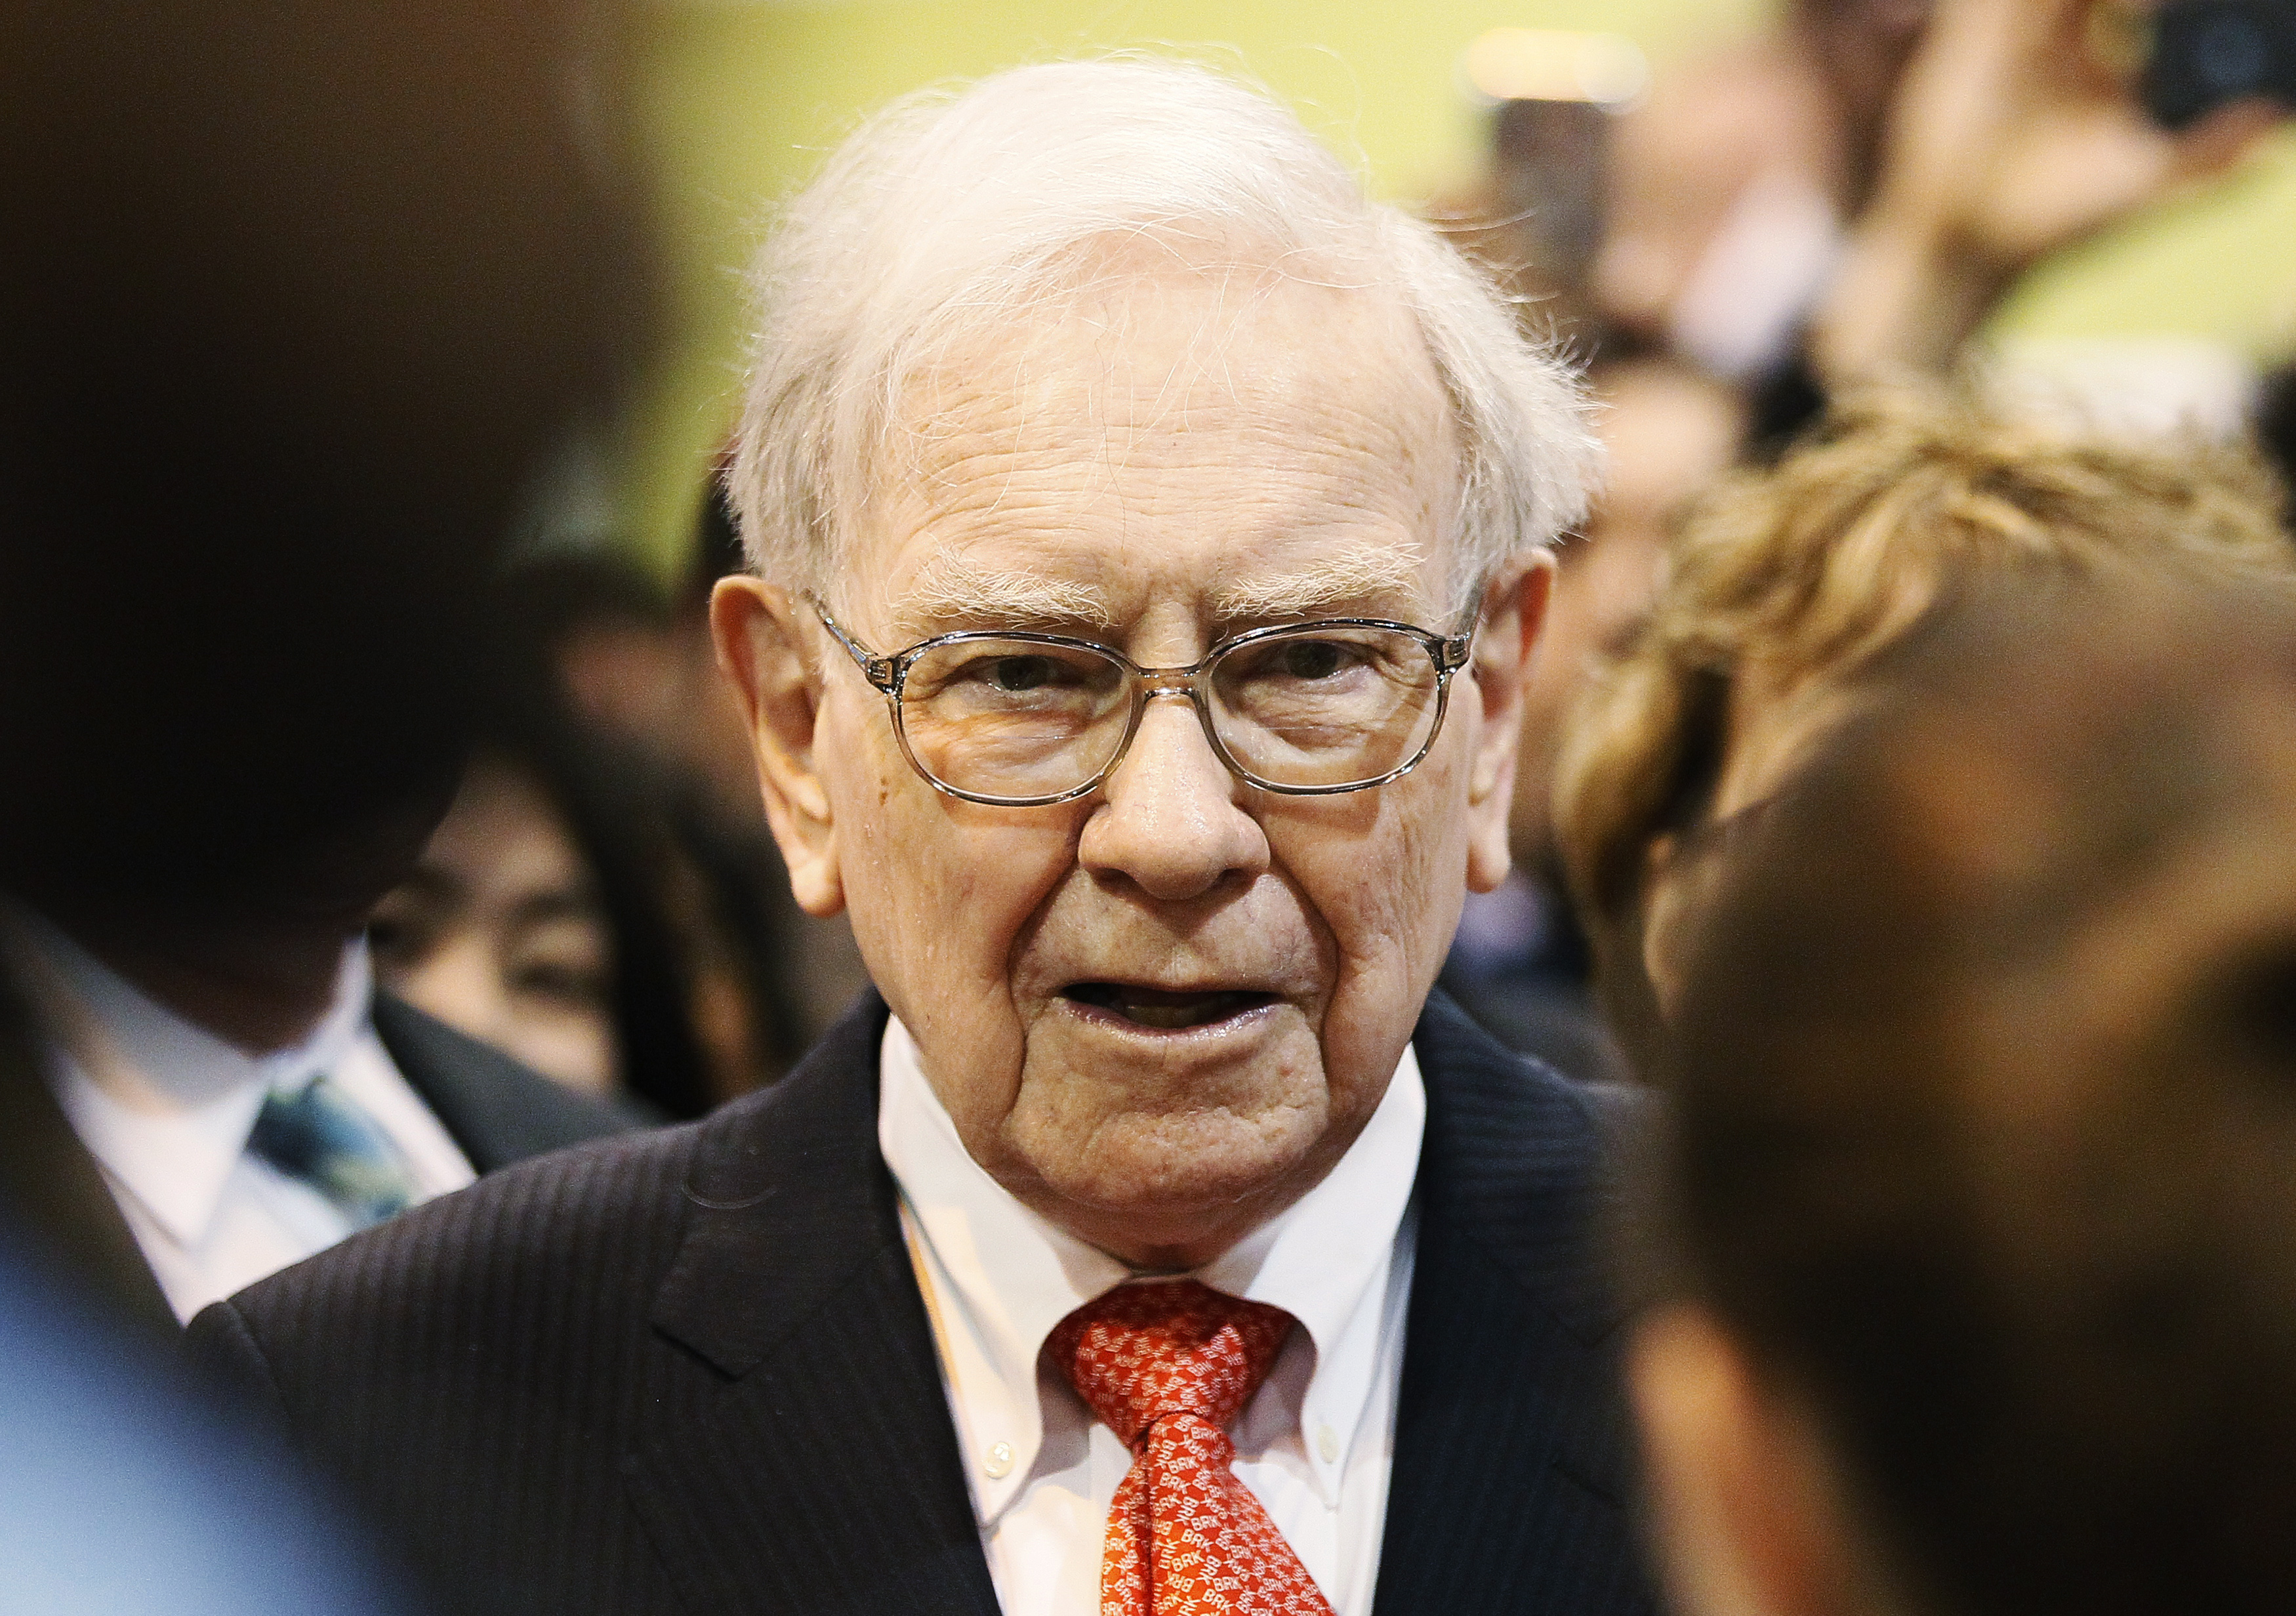 Buffett has now given half of his Berkshire shares to charity, announces resignation from Gates Foundation